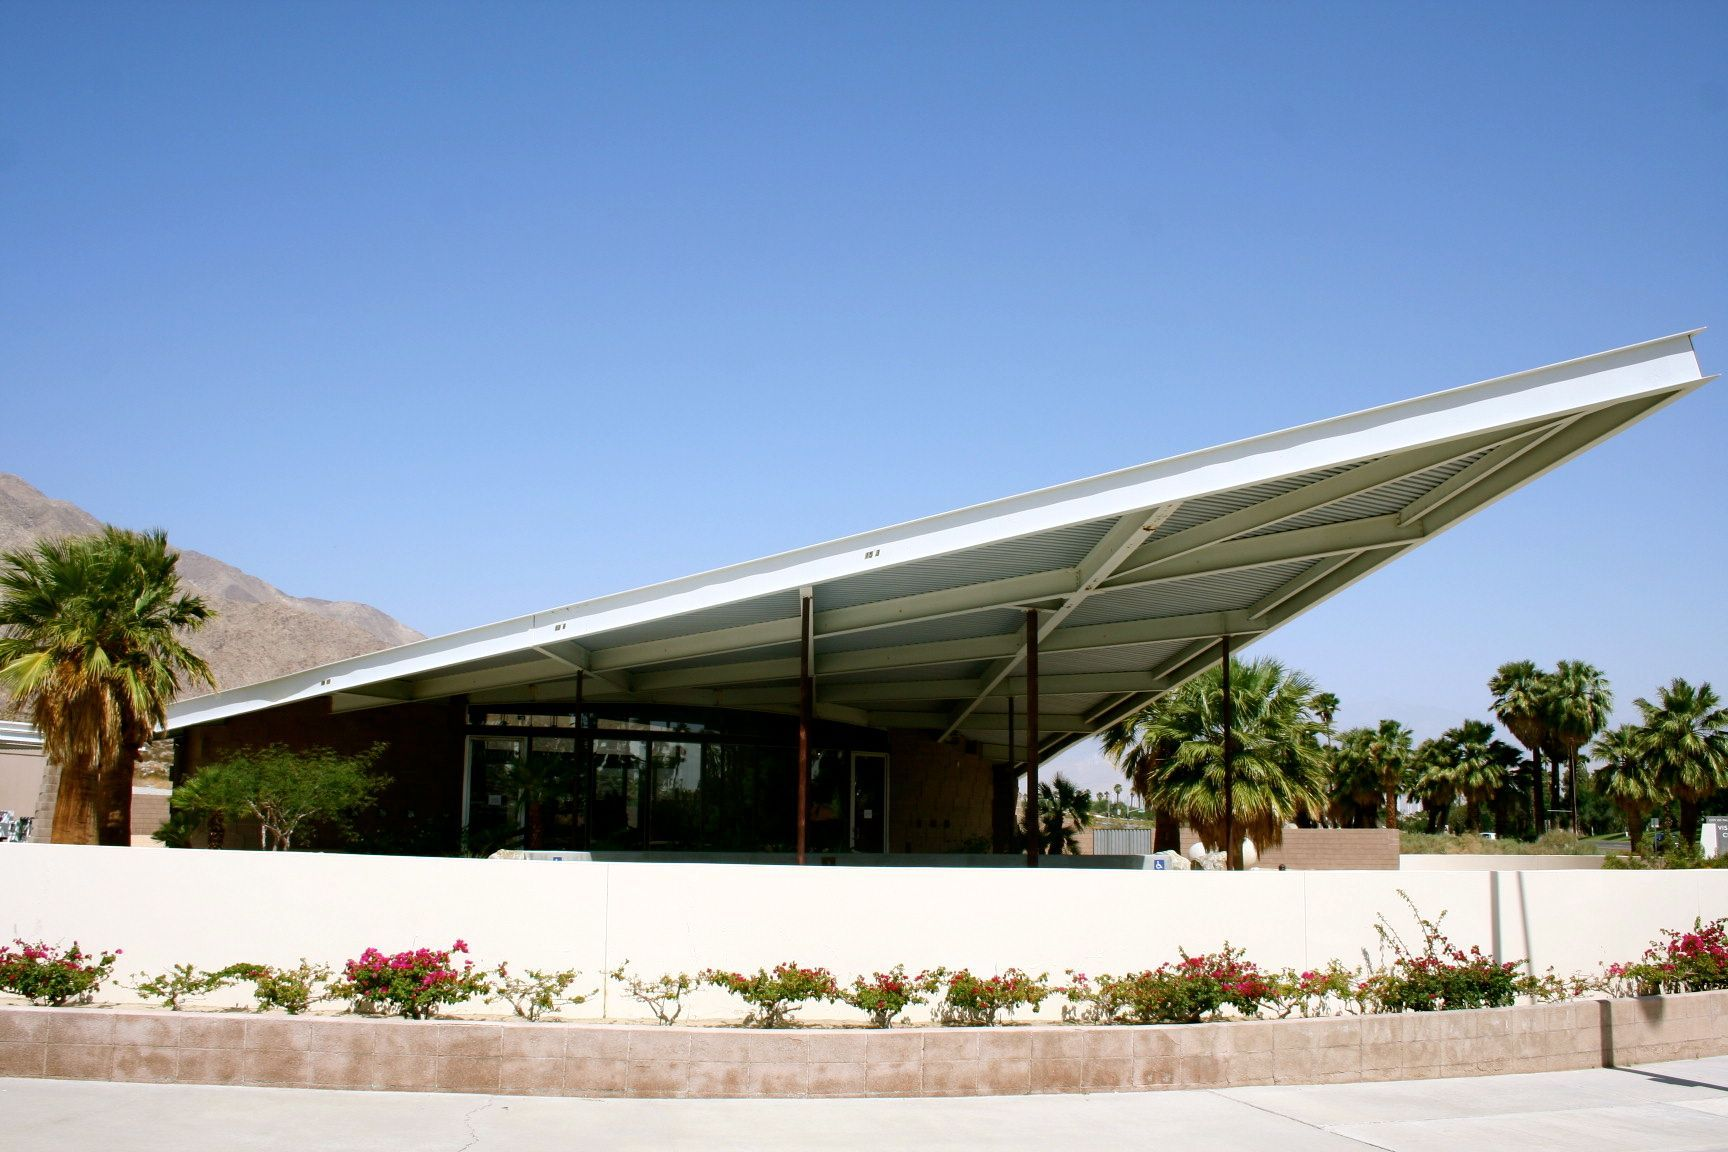 Albert Frey architect designed the Palm Springs Visitor